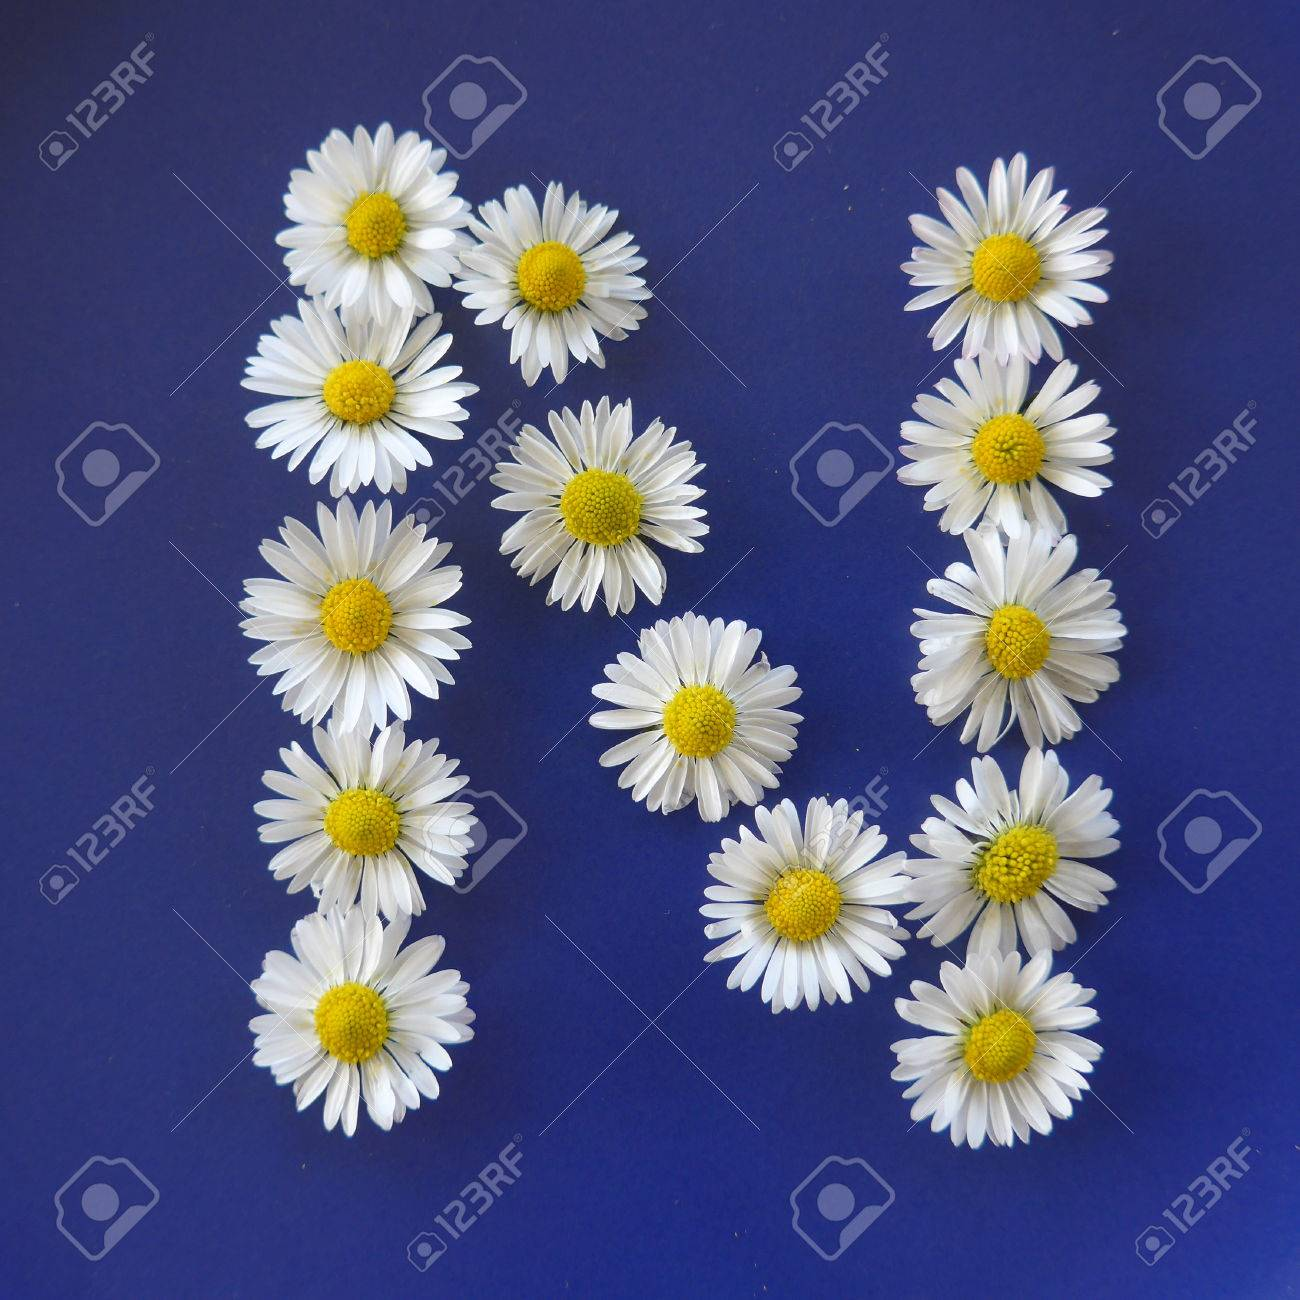 Letter n from white flowers daisies bellis perennis close up letter n from white flowers daisies bellis perennis close up on izmirmasajfo